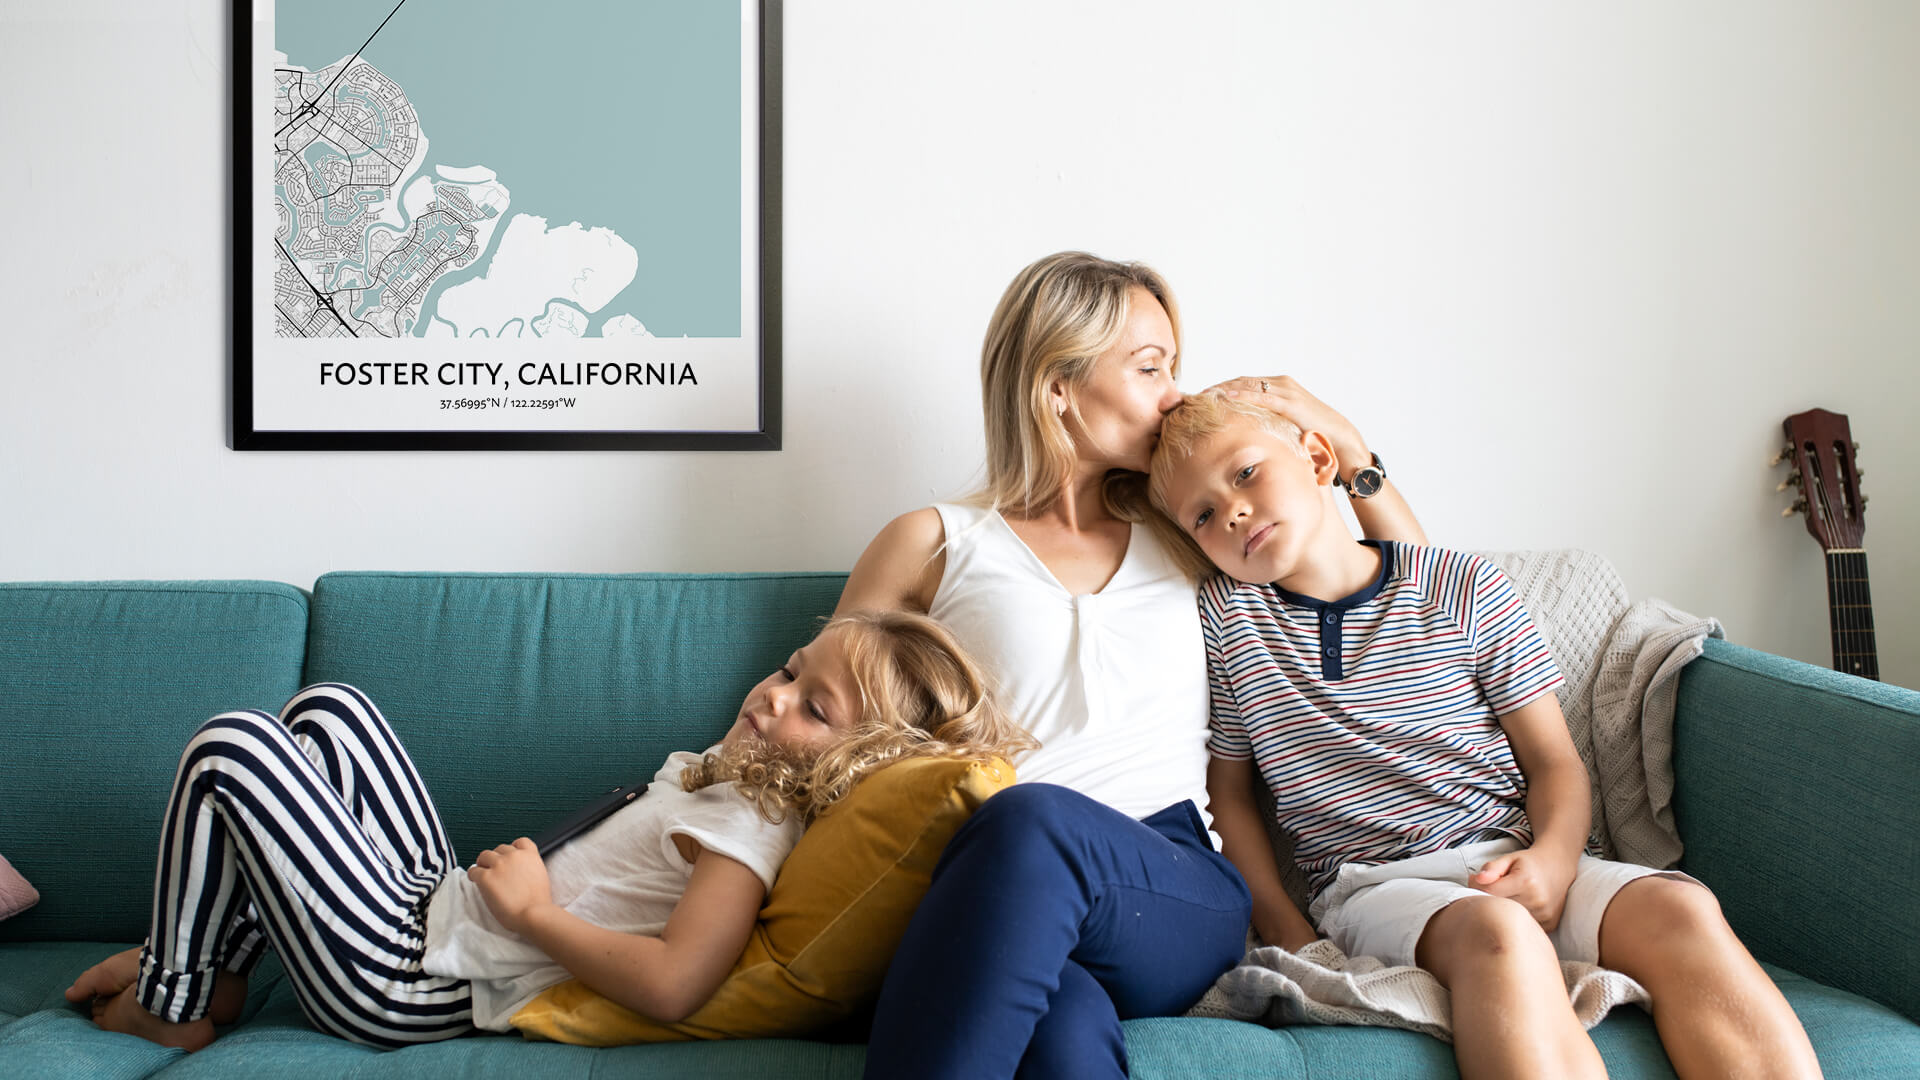 Foster City map poster